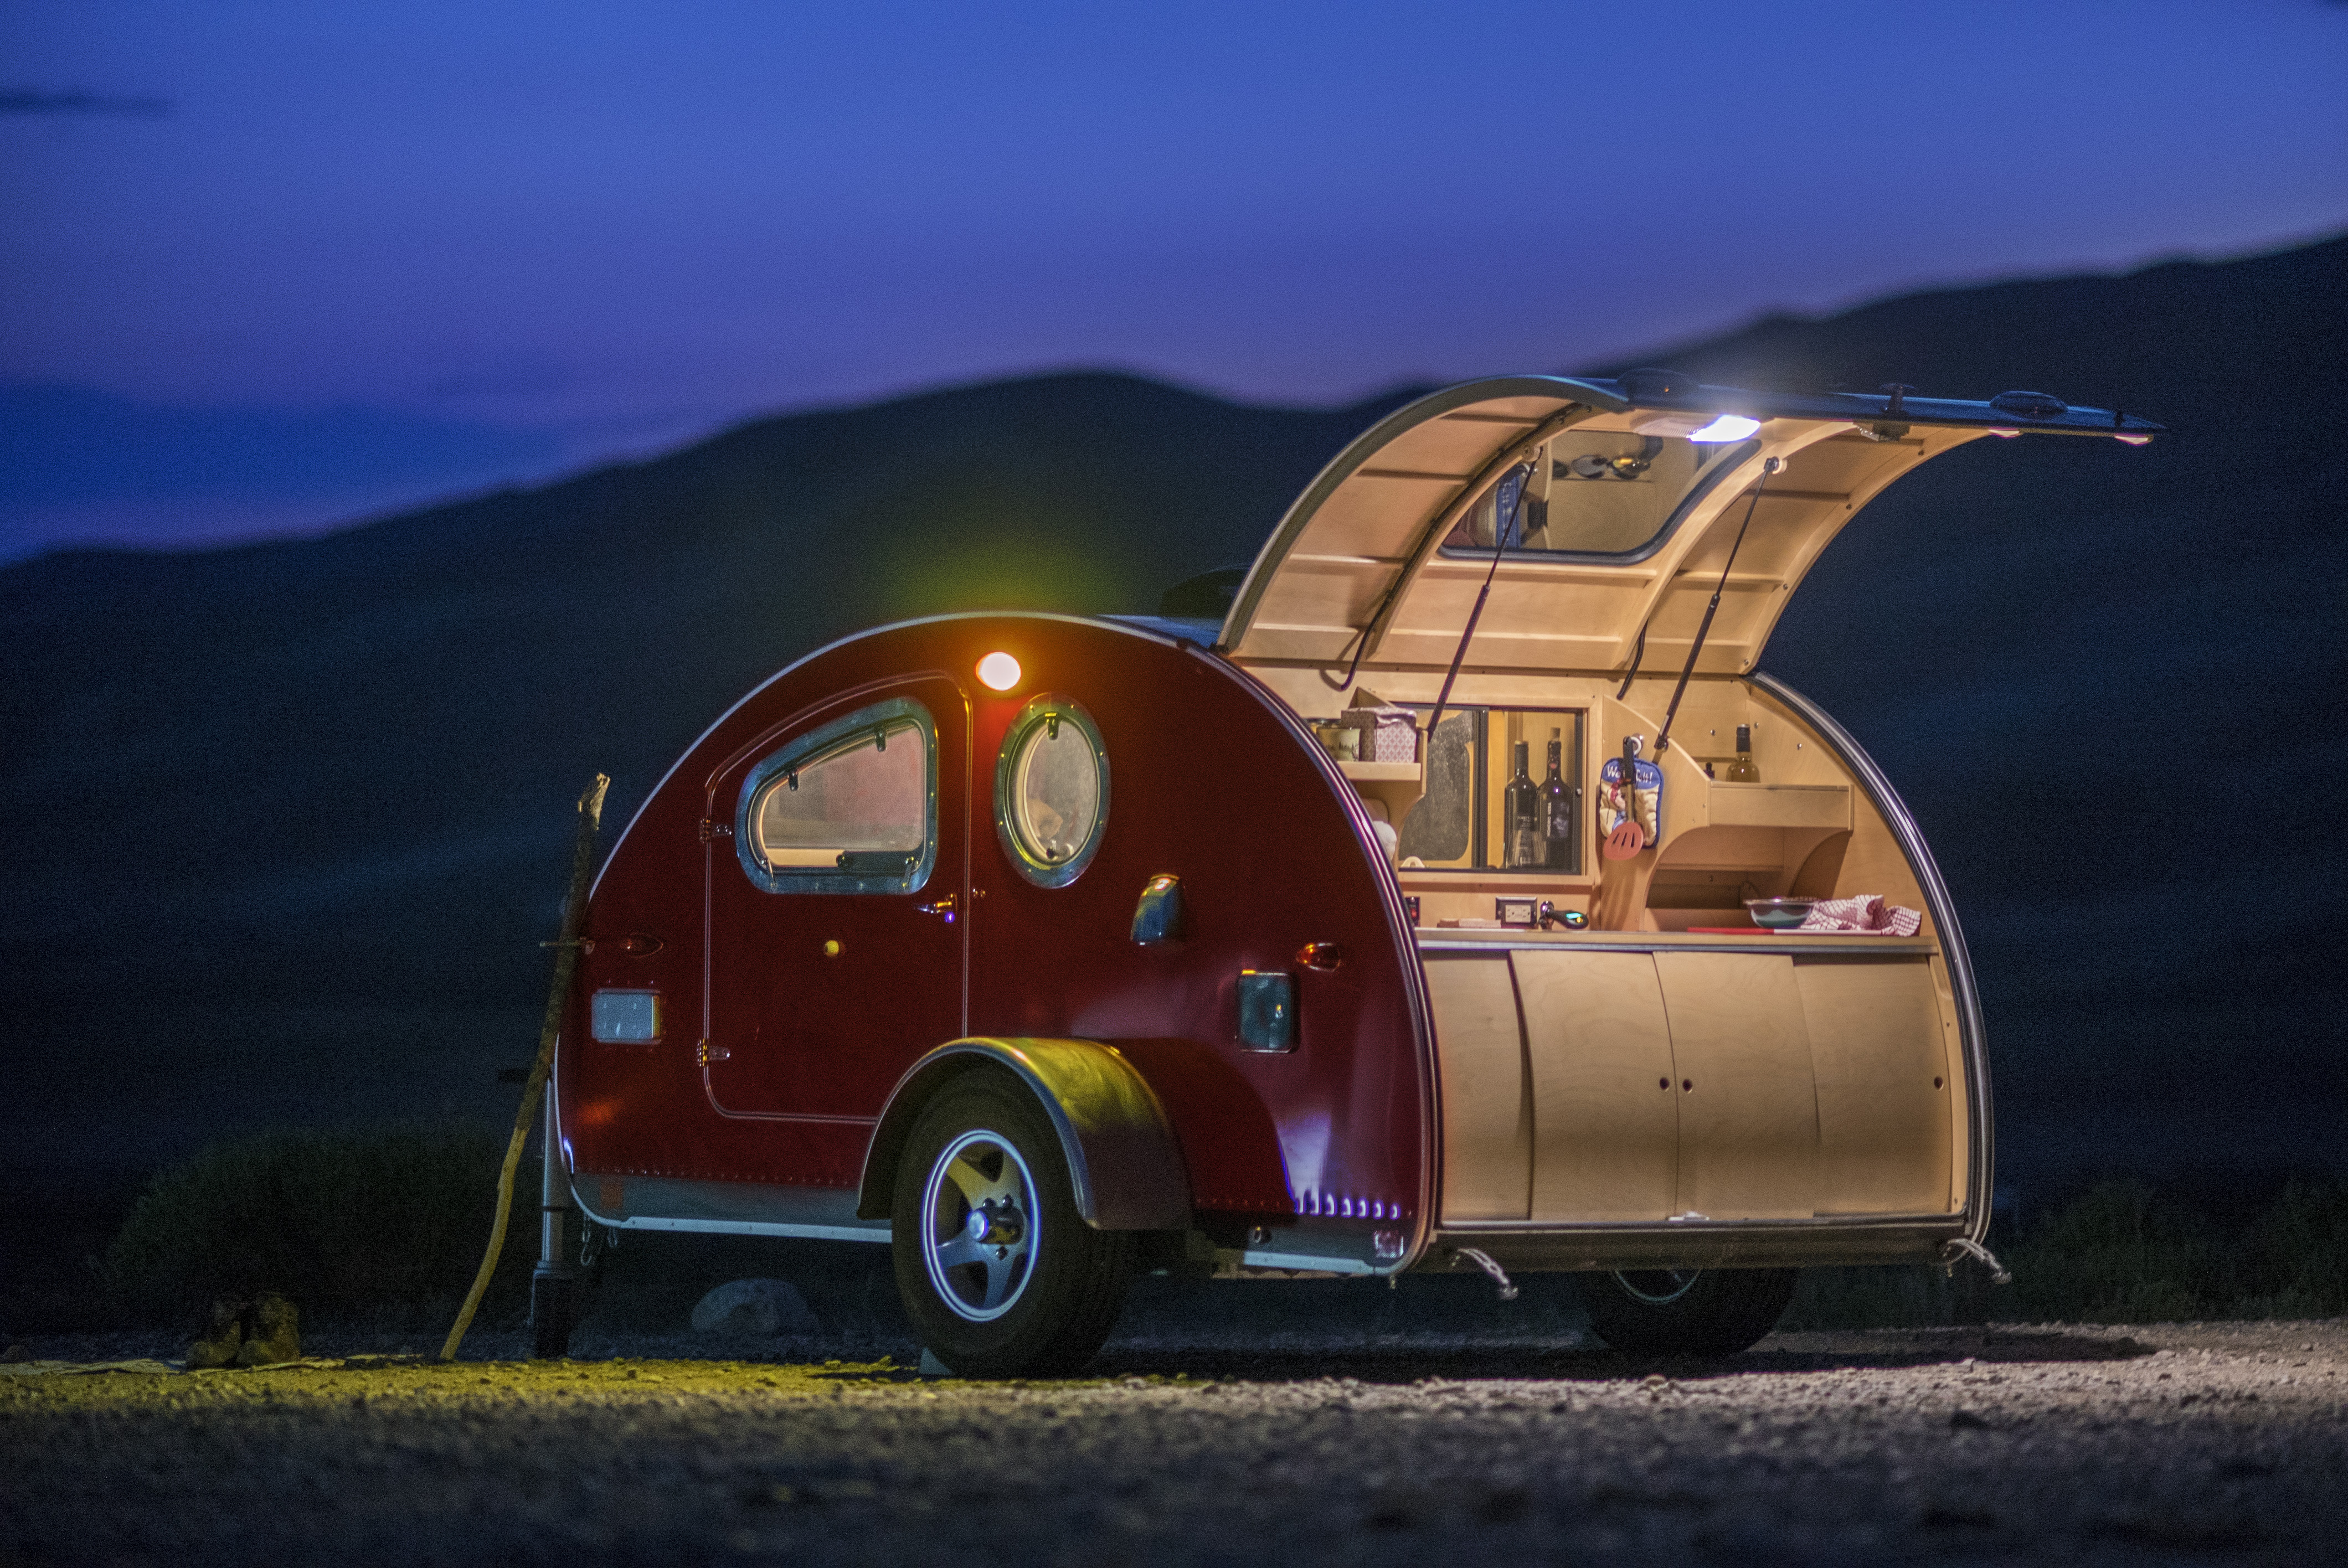 Vistabule Teardrop Trailers